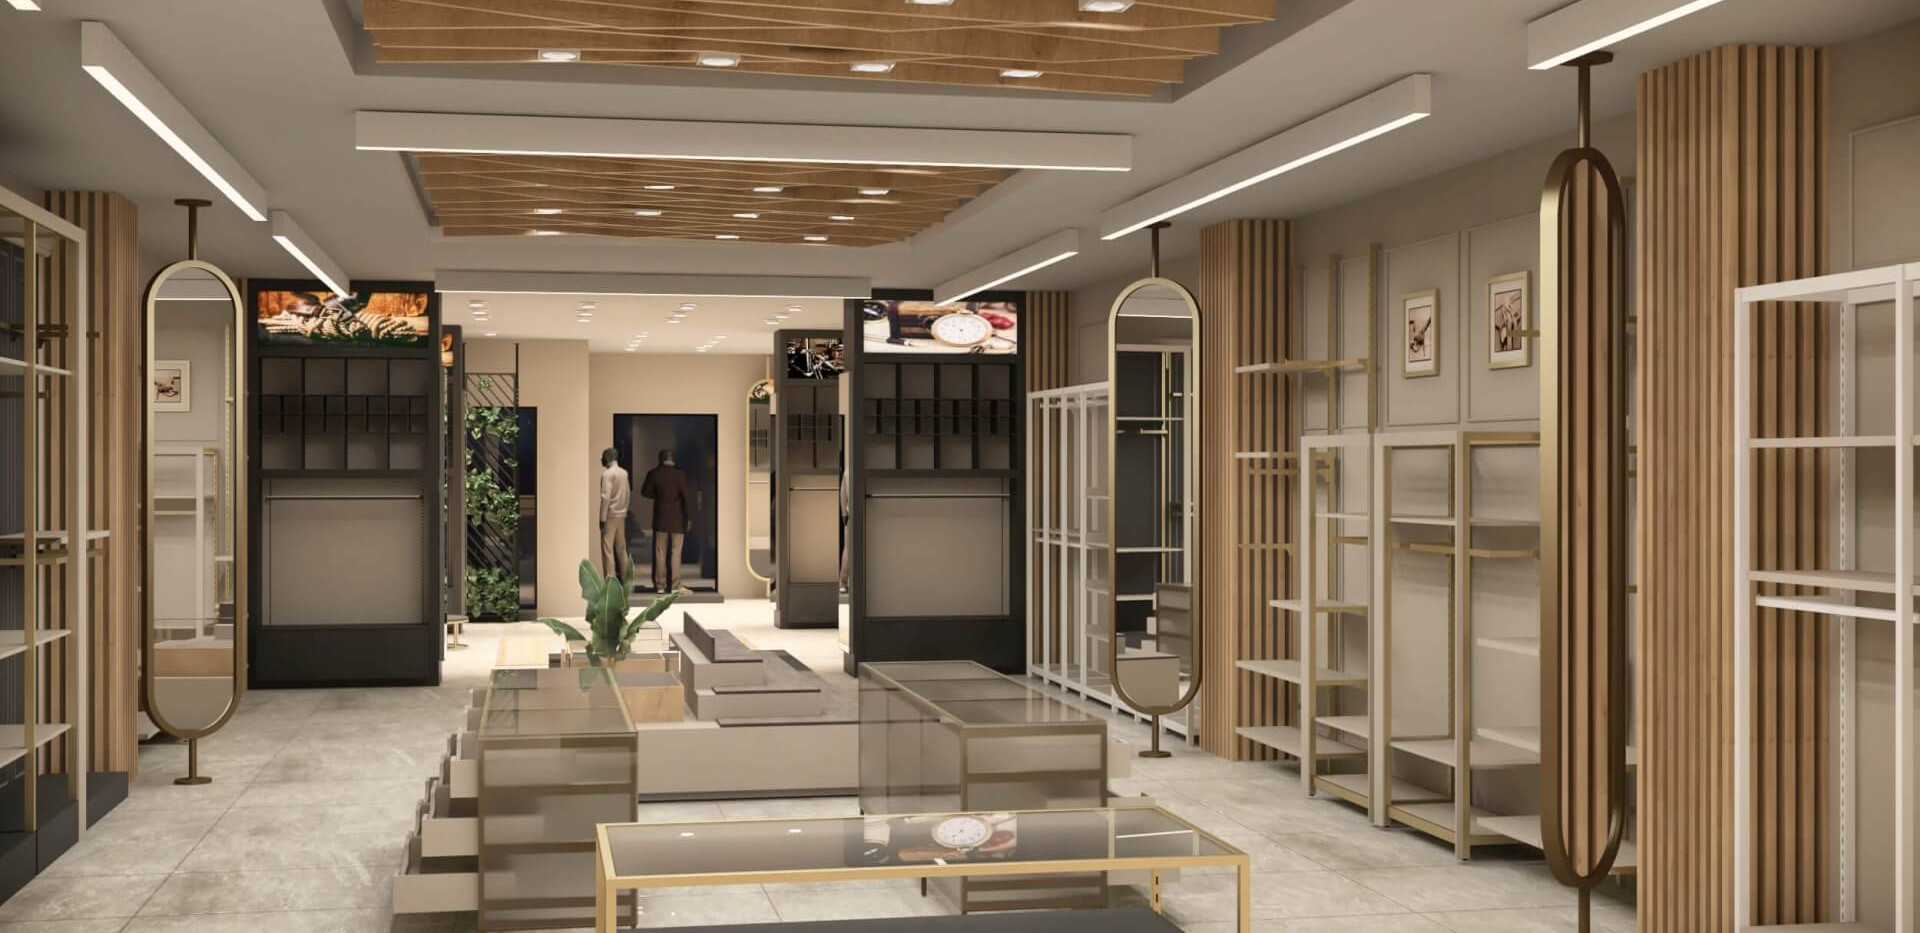 RCR - Fashion Store Shop Design-4.jpg